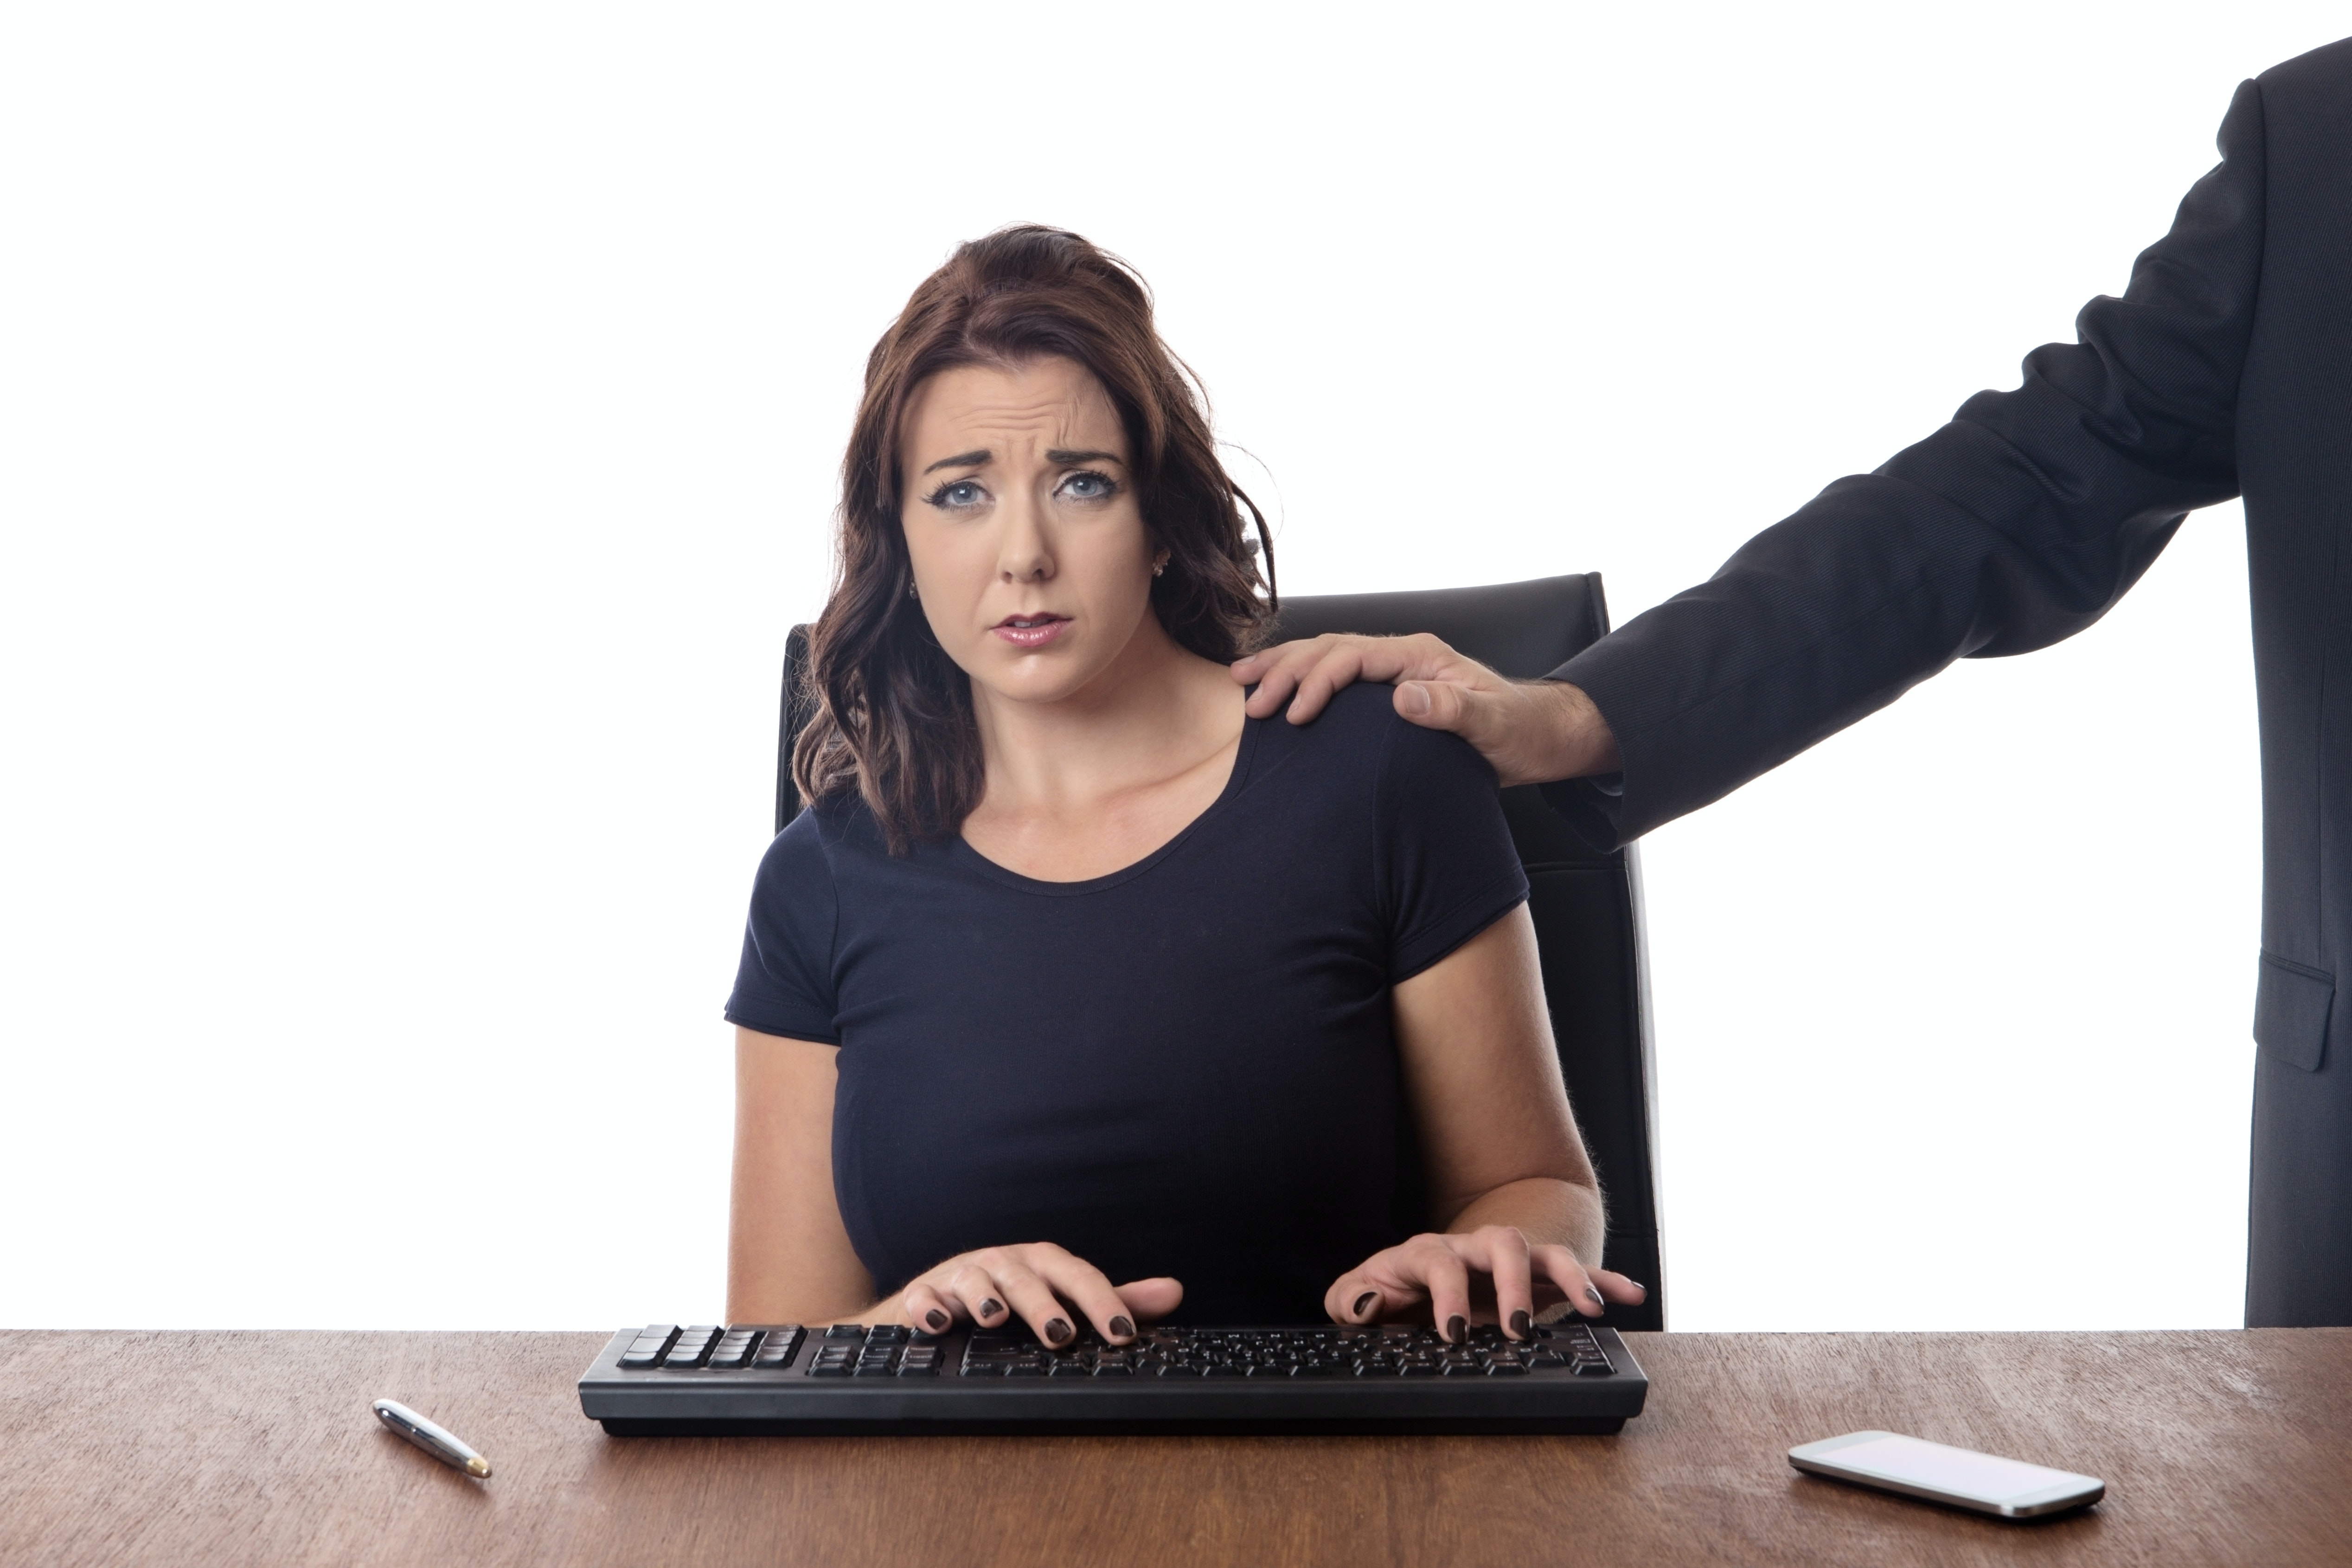 Common gender sexual harassment